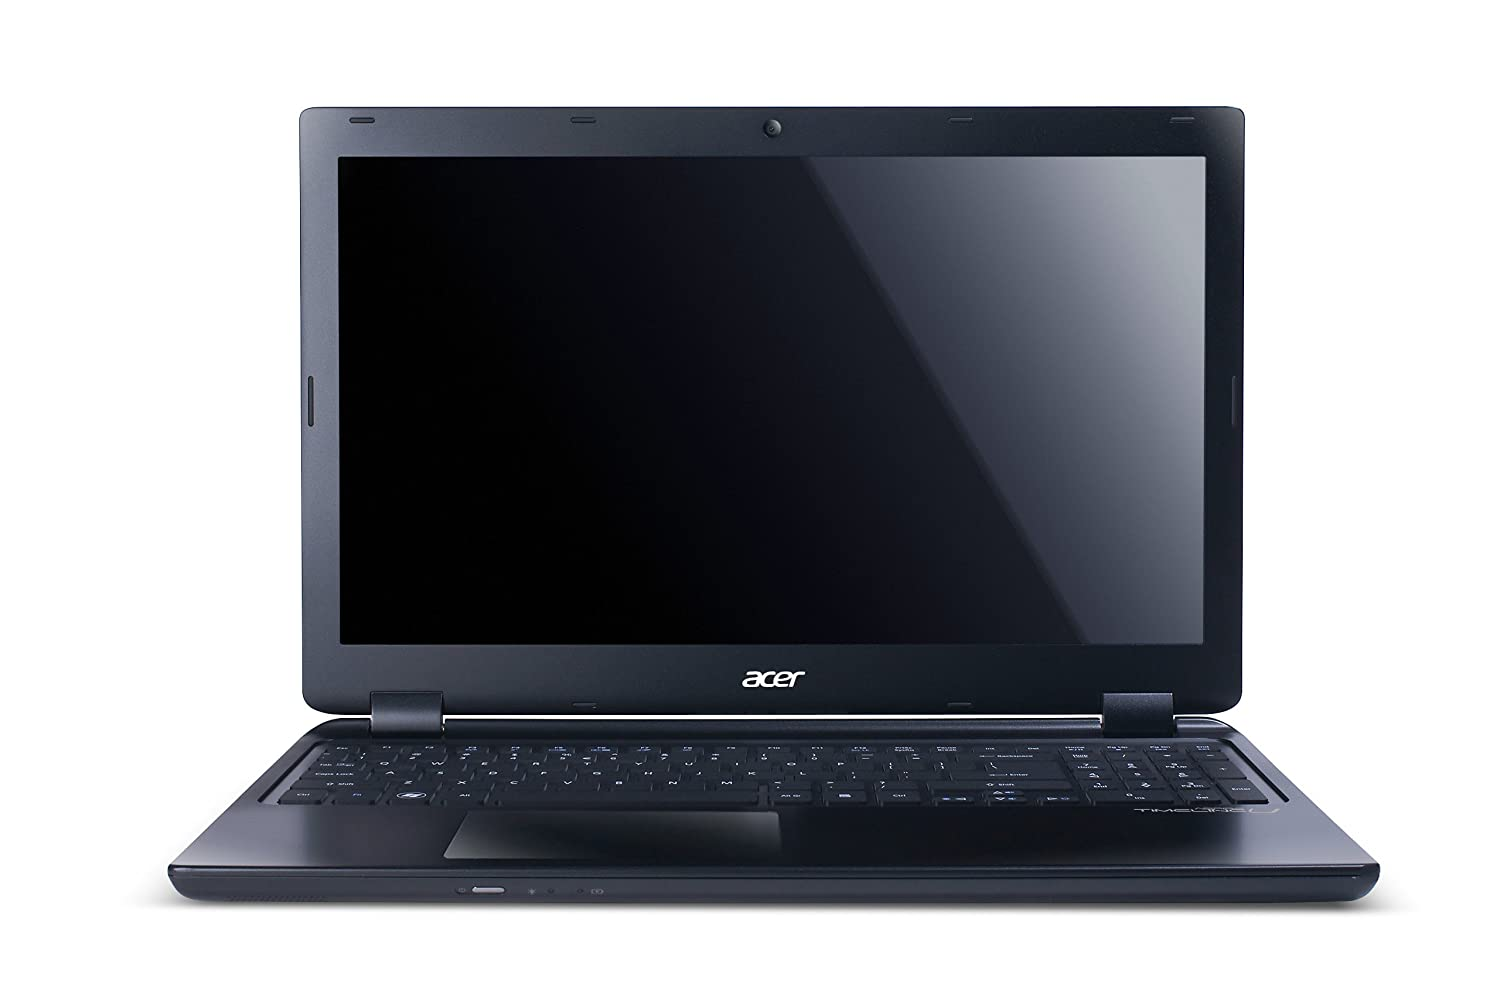 ACER ASPIRE M3-581TG INTEL GRAPHICS WINDOWS DRIVER DOWNLOAD